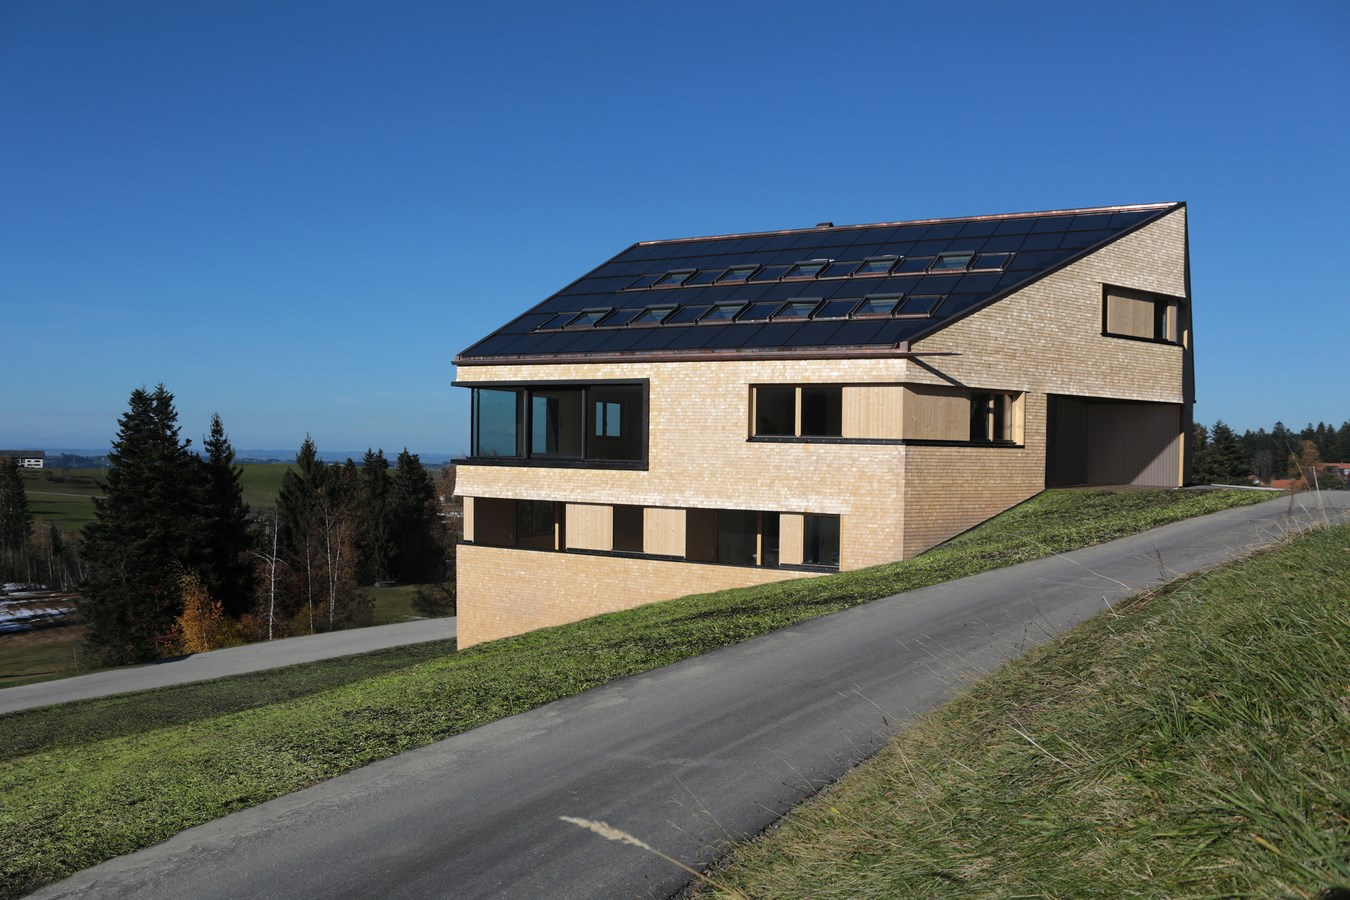 House-on-the-mountain-by-Juri-Troy-Architects-2